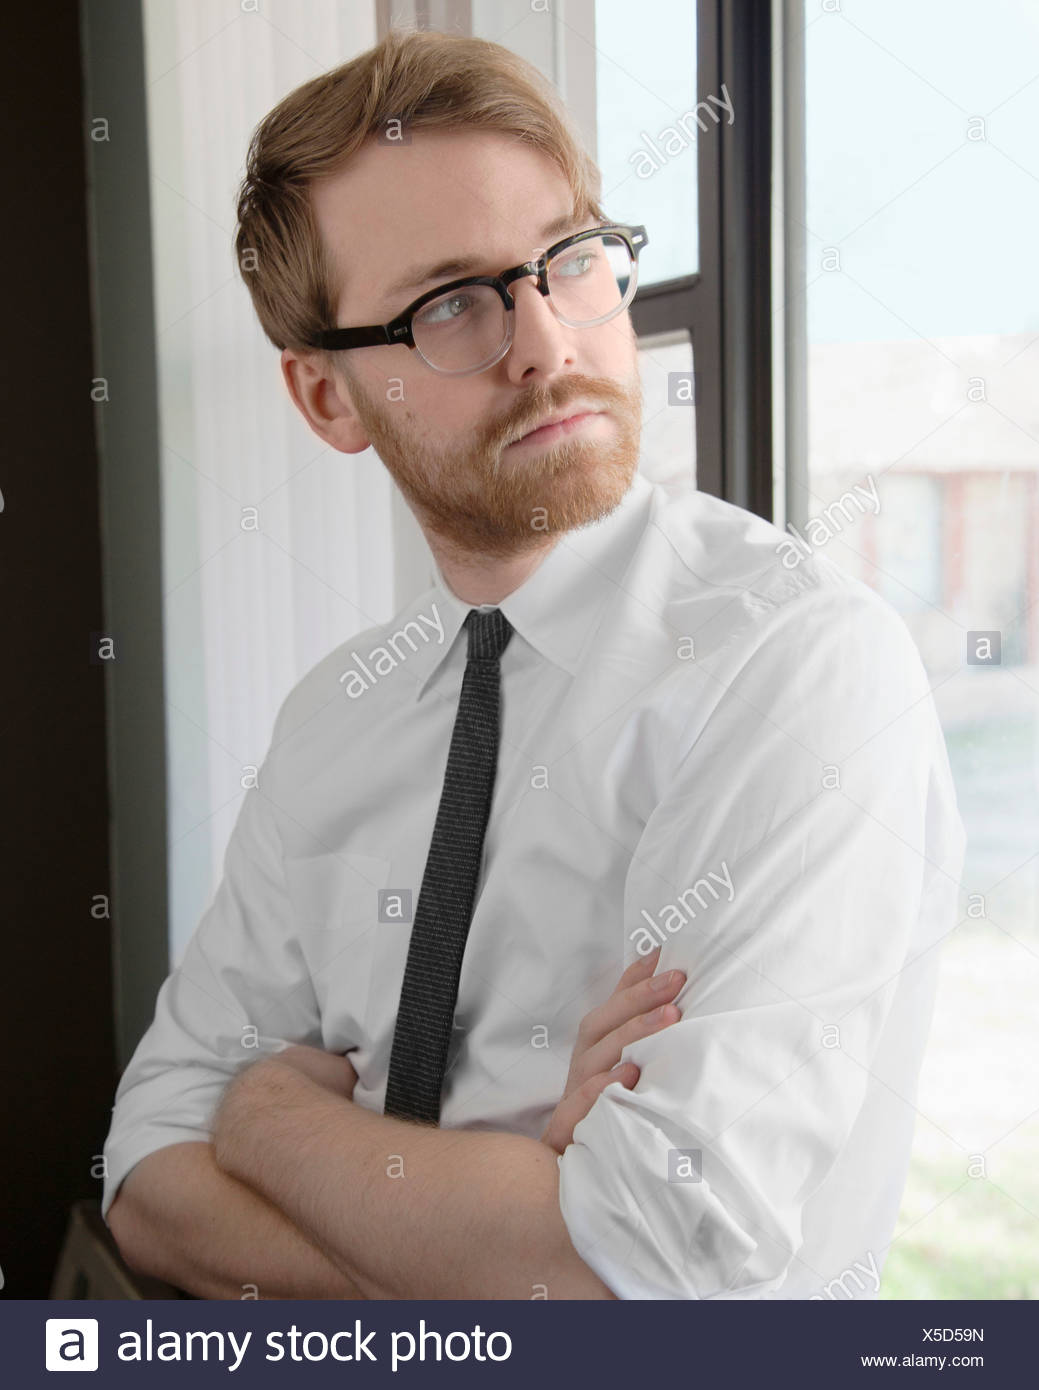 Young man wearing spectacles and tie looking away - Stock Image